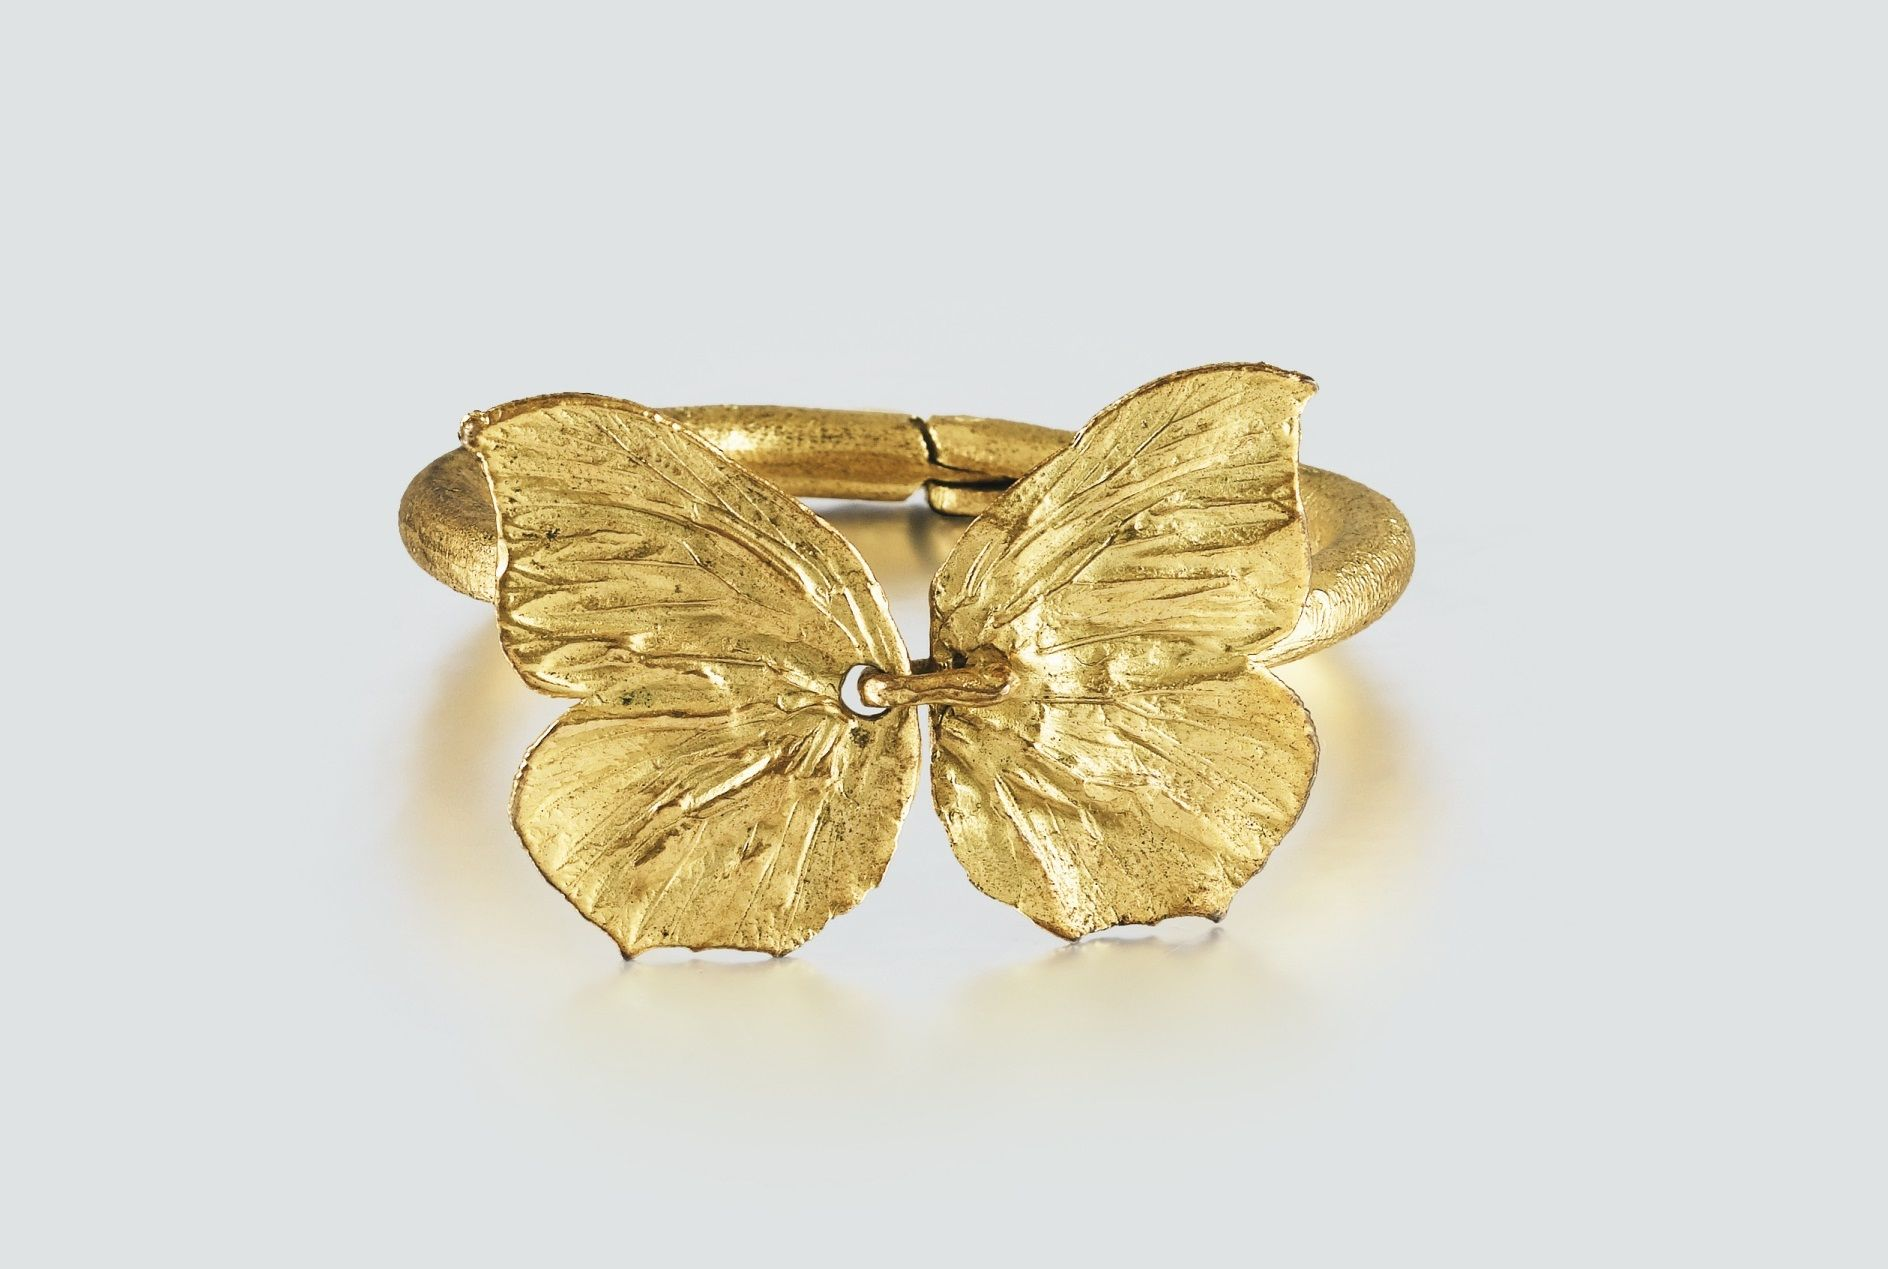 Claude Lalanne Bracelet Papillon Grand Modele 1978 Papillon A Gilded Bronze Bracelet 1978 Signed Numbered And With Edito Francois Xavier Claude Jewelry